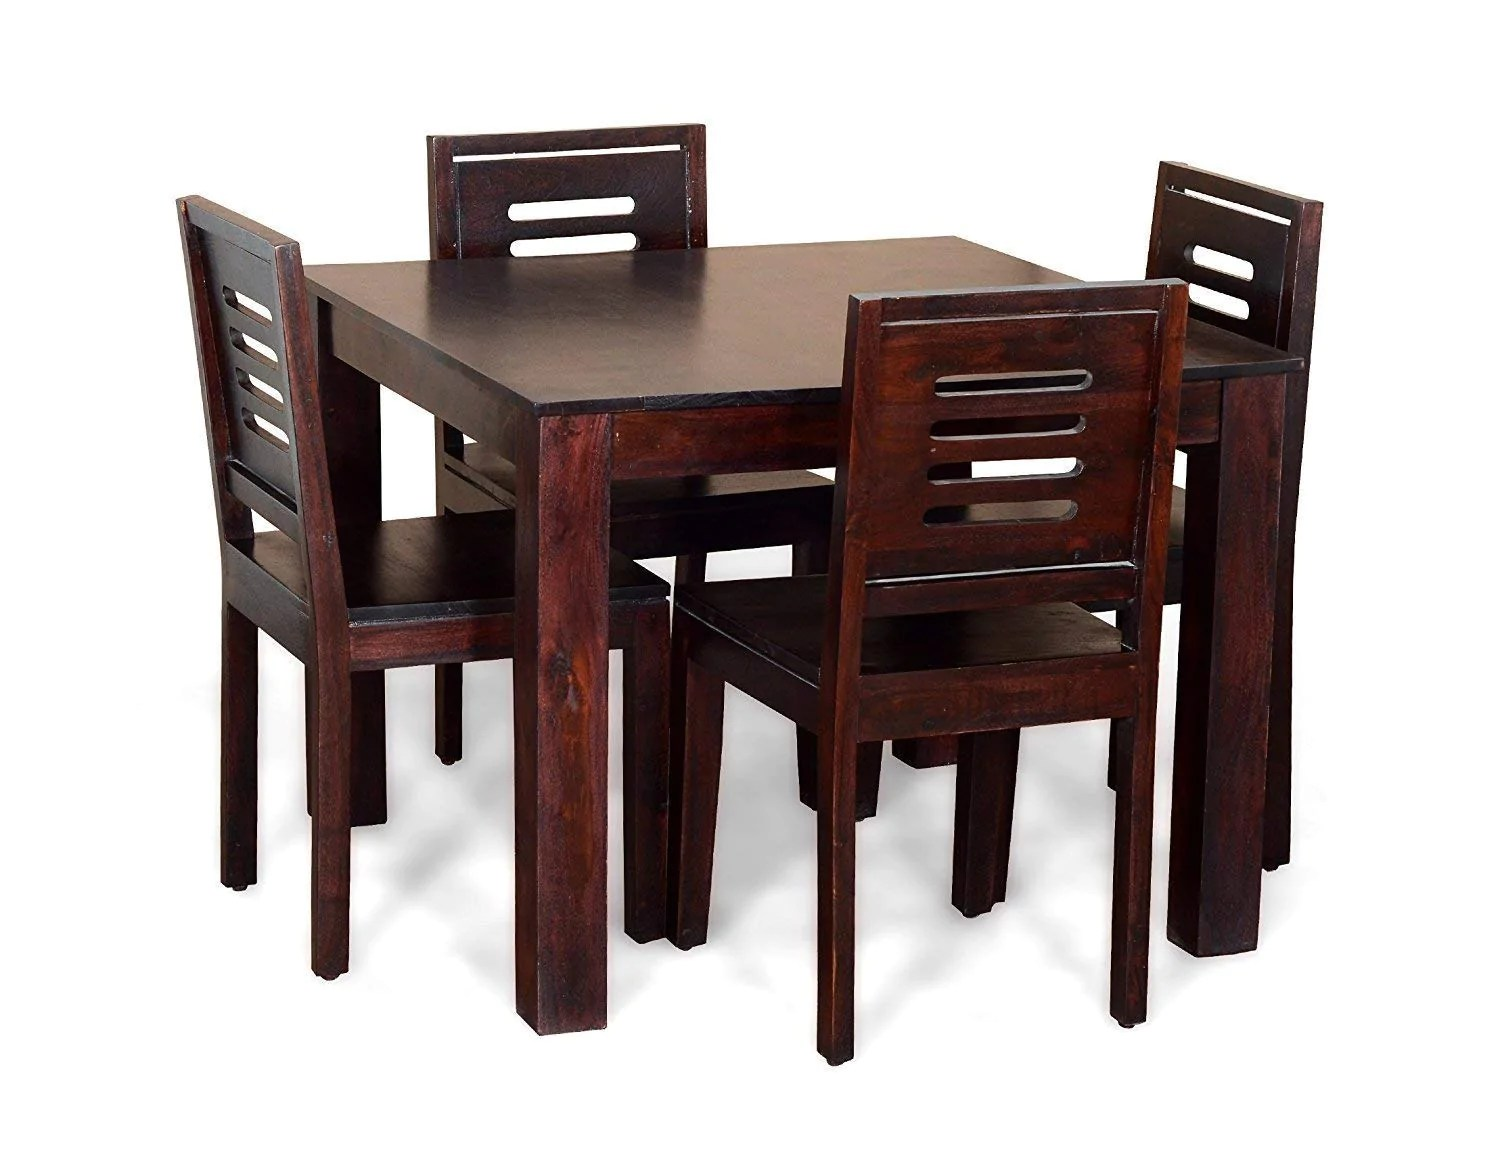 4 chairs in living room rooms ideas modern driftingwood sheesham wood dining table set with for seater walnut finish